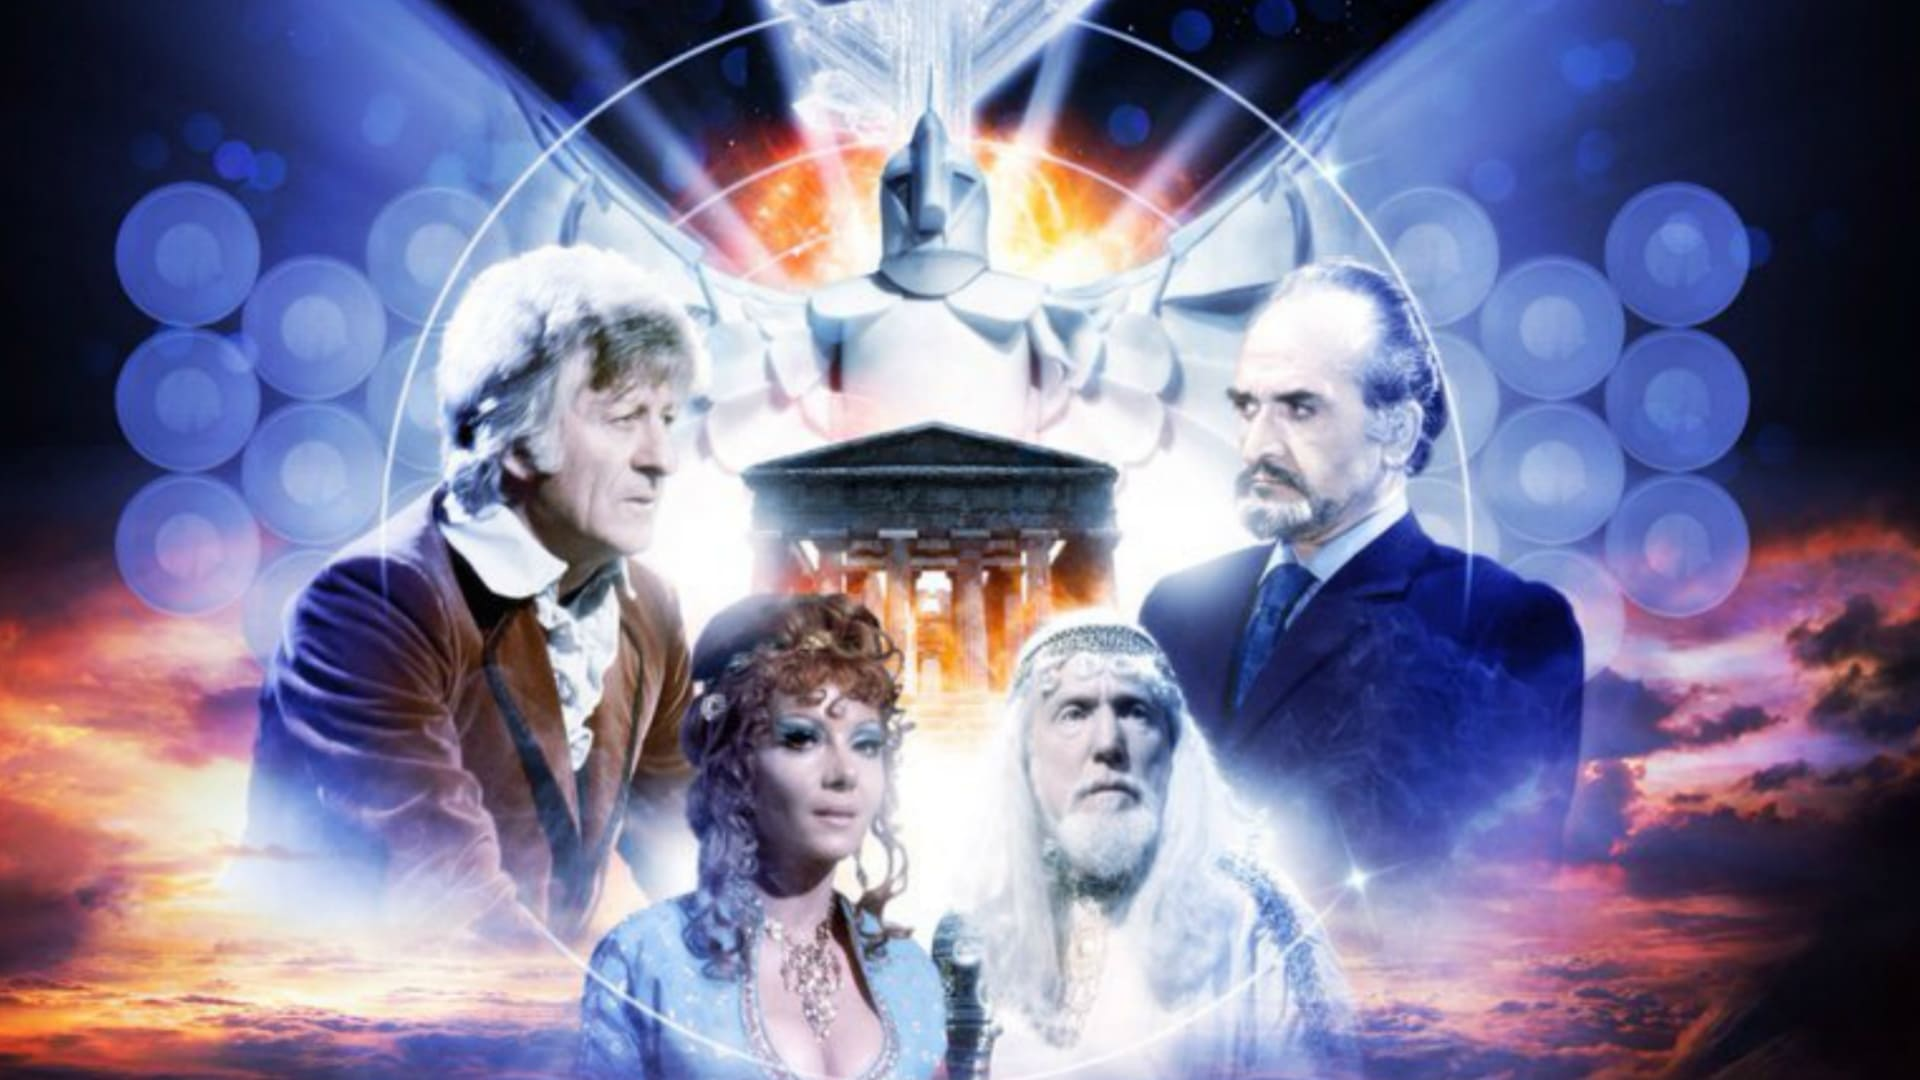 Doctor Who Season 9 :Episode 21  The Time Monster, Episode One